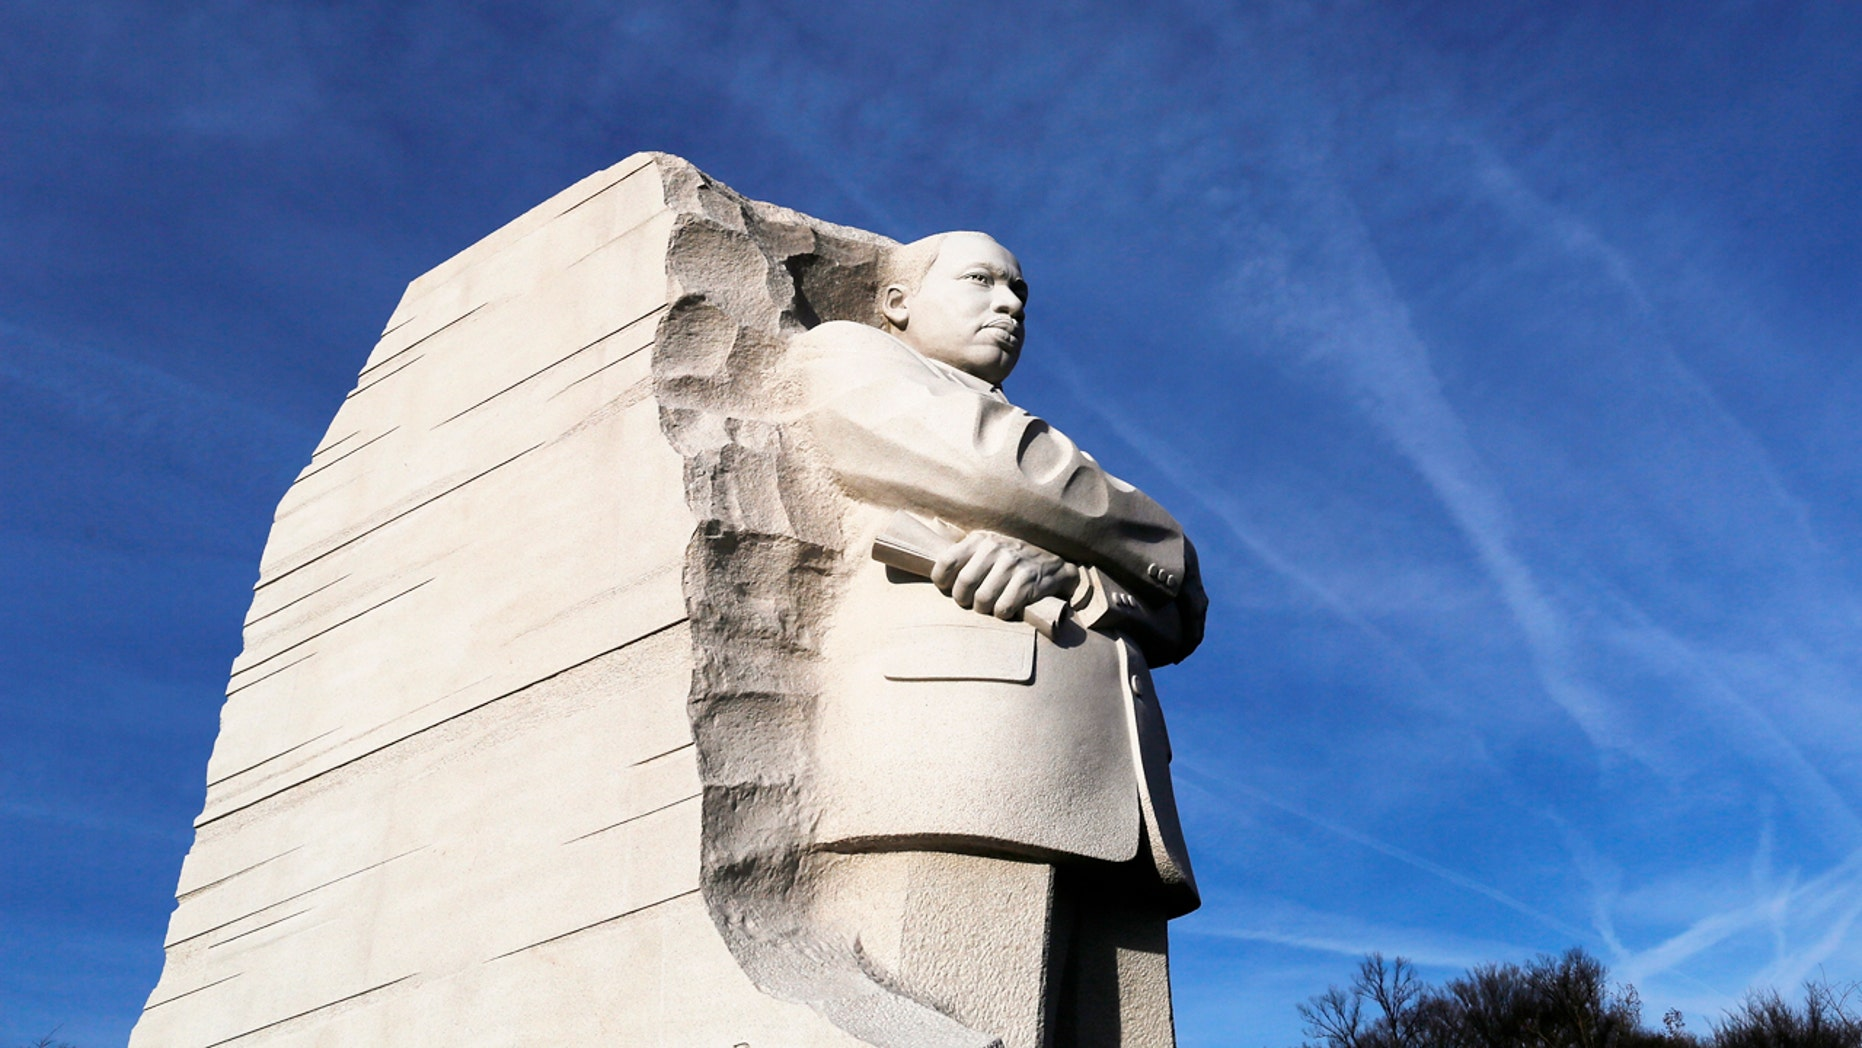 A general view of the Martin Luther King Jr. Memorial on the U.S. national holiday in his honor, in Washington, January 20, 2014. King, the civil rights leader who 50 years ago received the Nobel Peace Prize, was assassinated in Memphis, Tennessee in 1968. He was born on January 15, 1929, and the holiday commemorating his birth was enacted in the mid 1980s.  REUTERS/Jonathan Ernst    (UNITED STATES - Tags: ANNIVERSARY POLITICS) - RTX17N5S